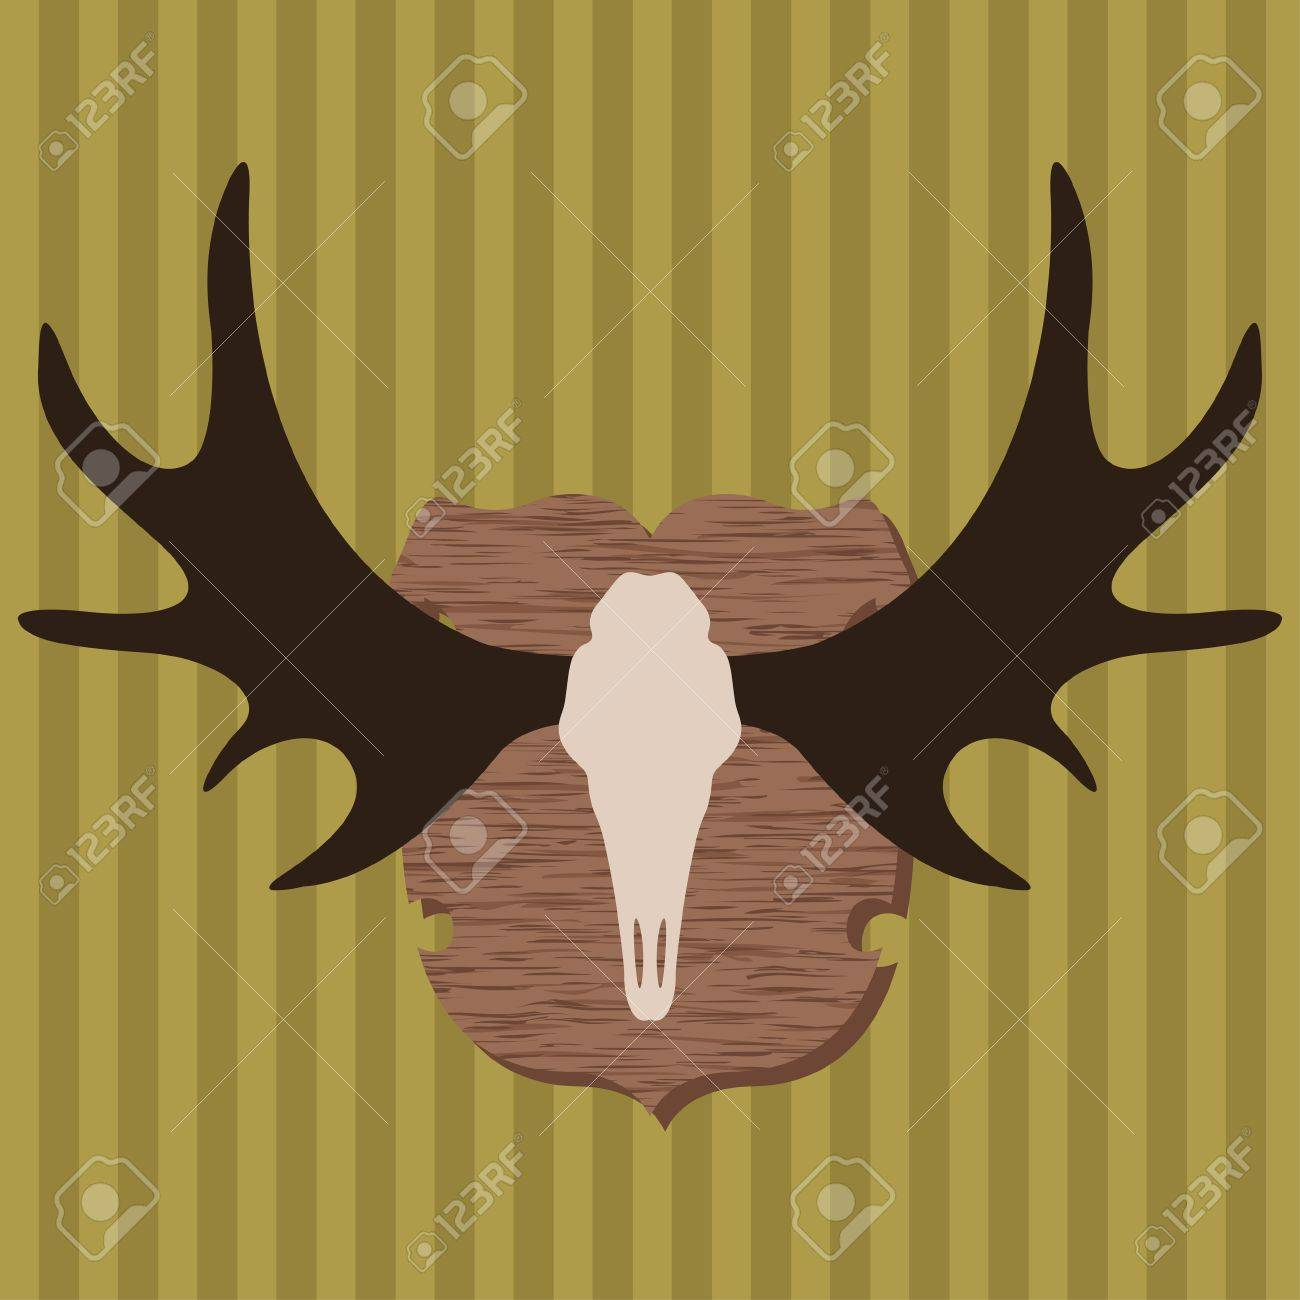 Moose head horns hunting trophy illustration background vector for poster Stock Vector - 14355881